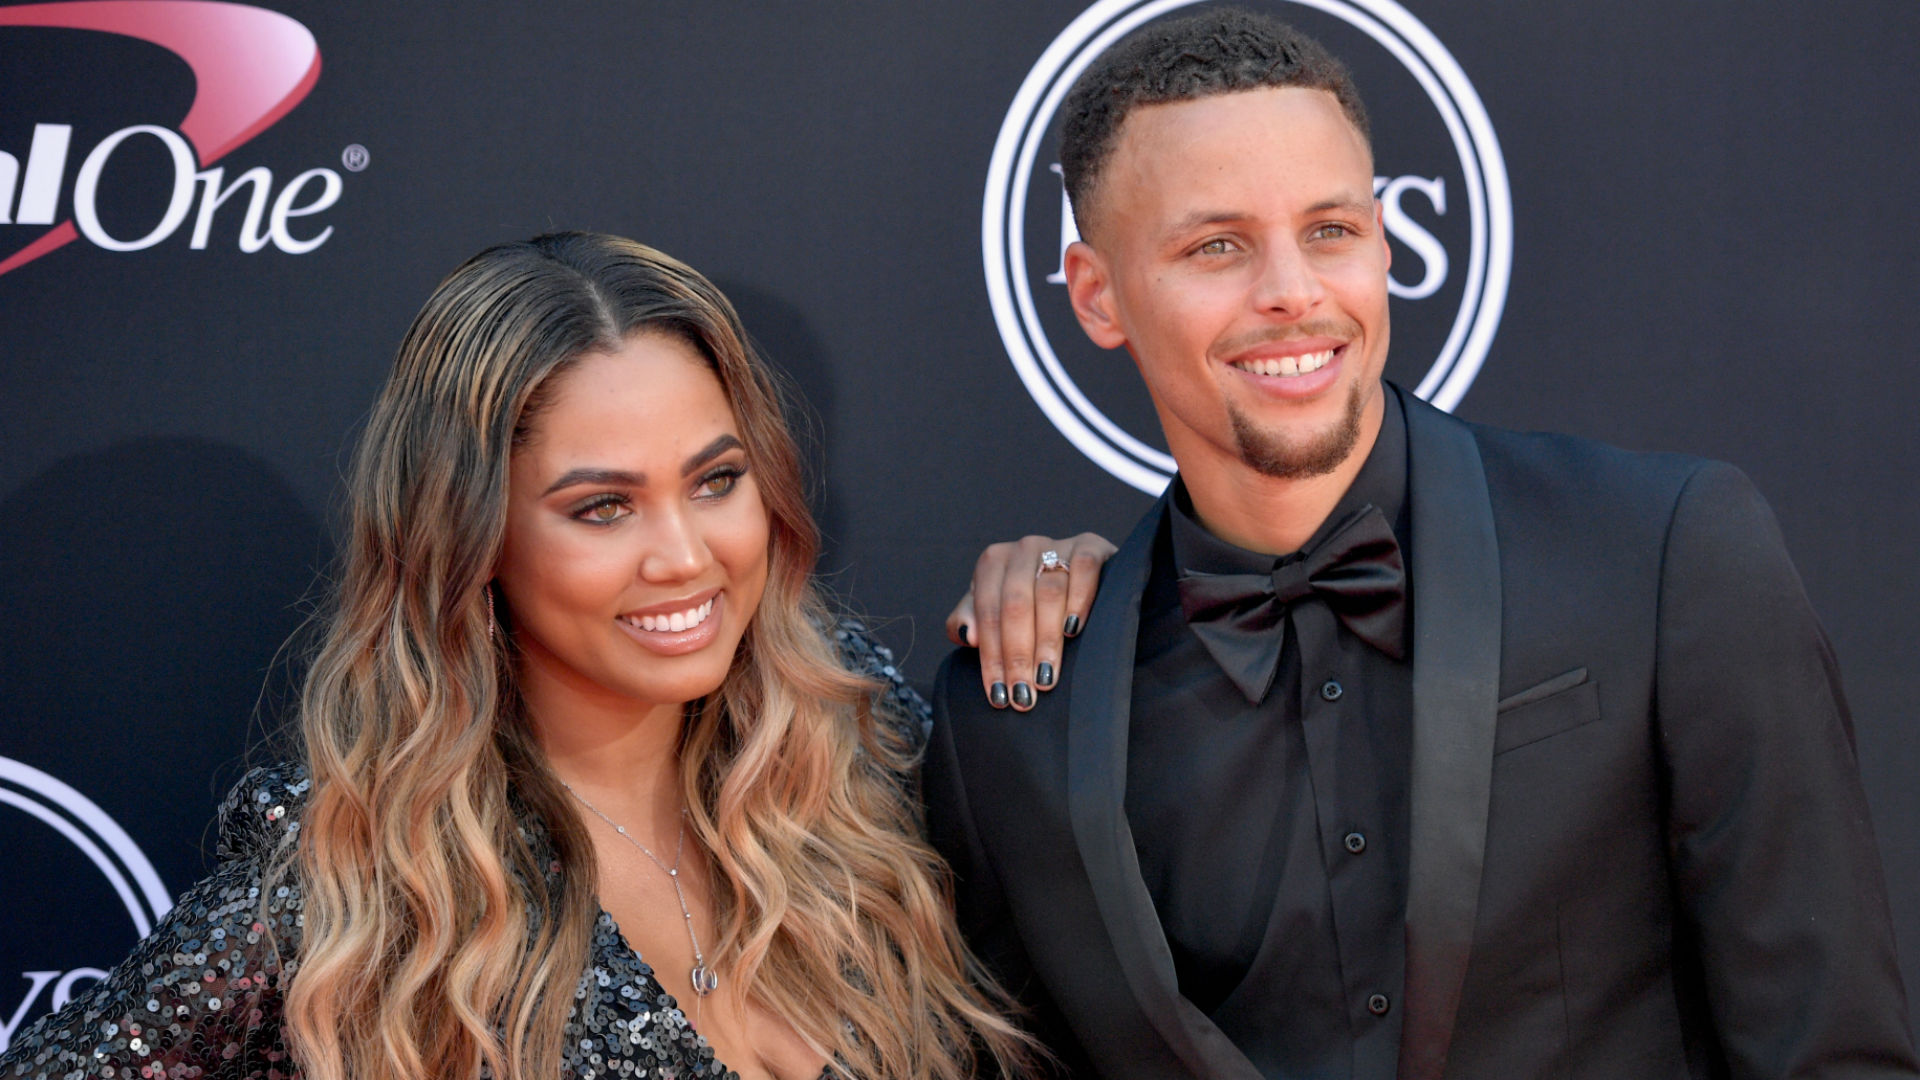 ayesha curry defends steph after twitter user claims he